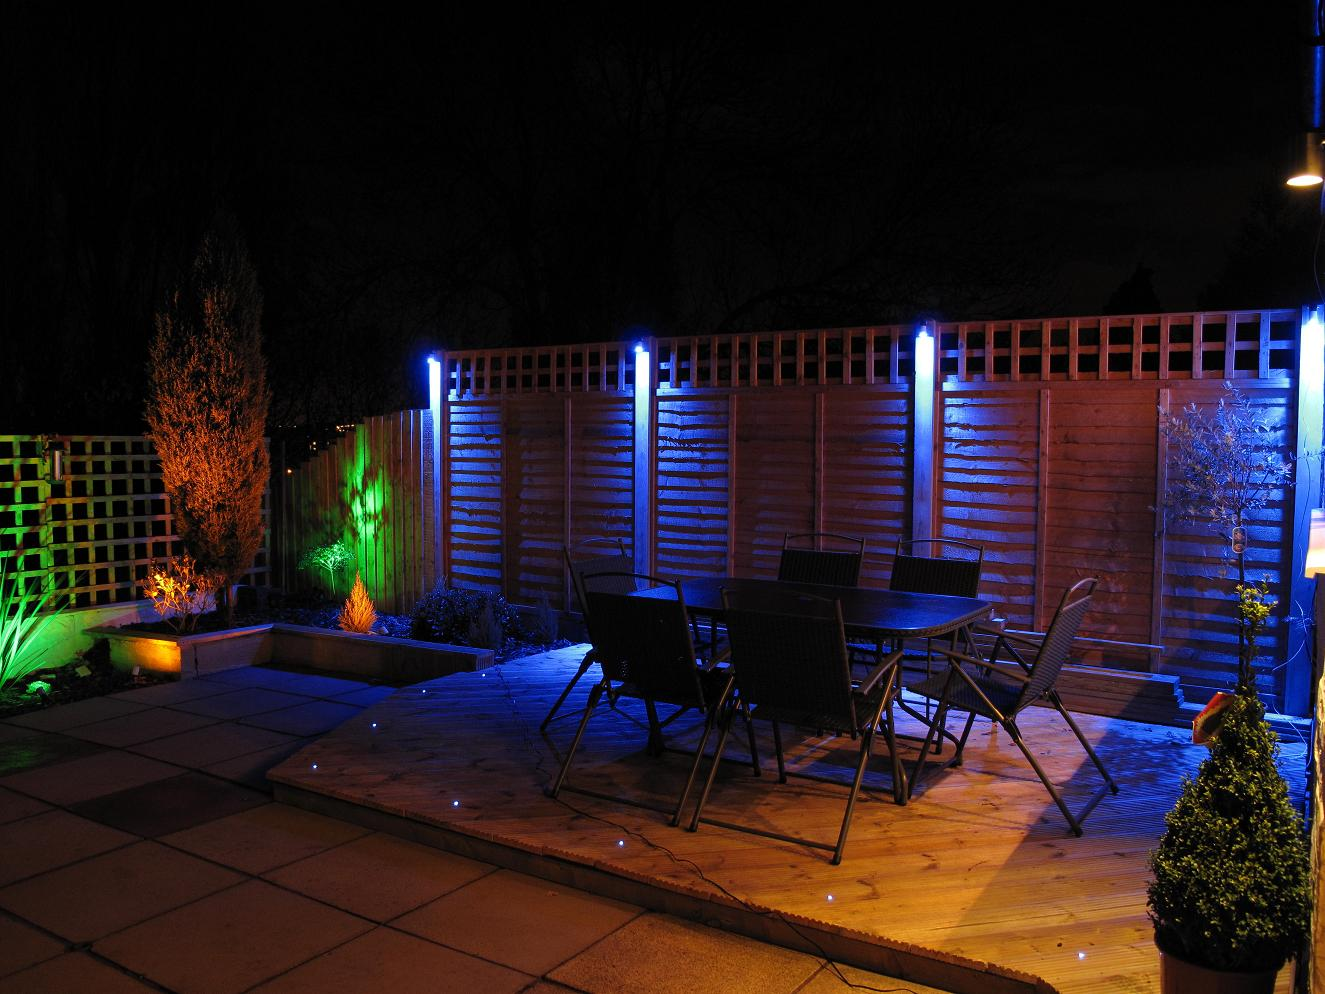 led garden lights. Black Bedroom Furniture Sets. Home Design Ideas